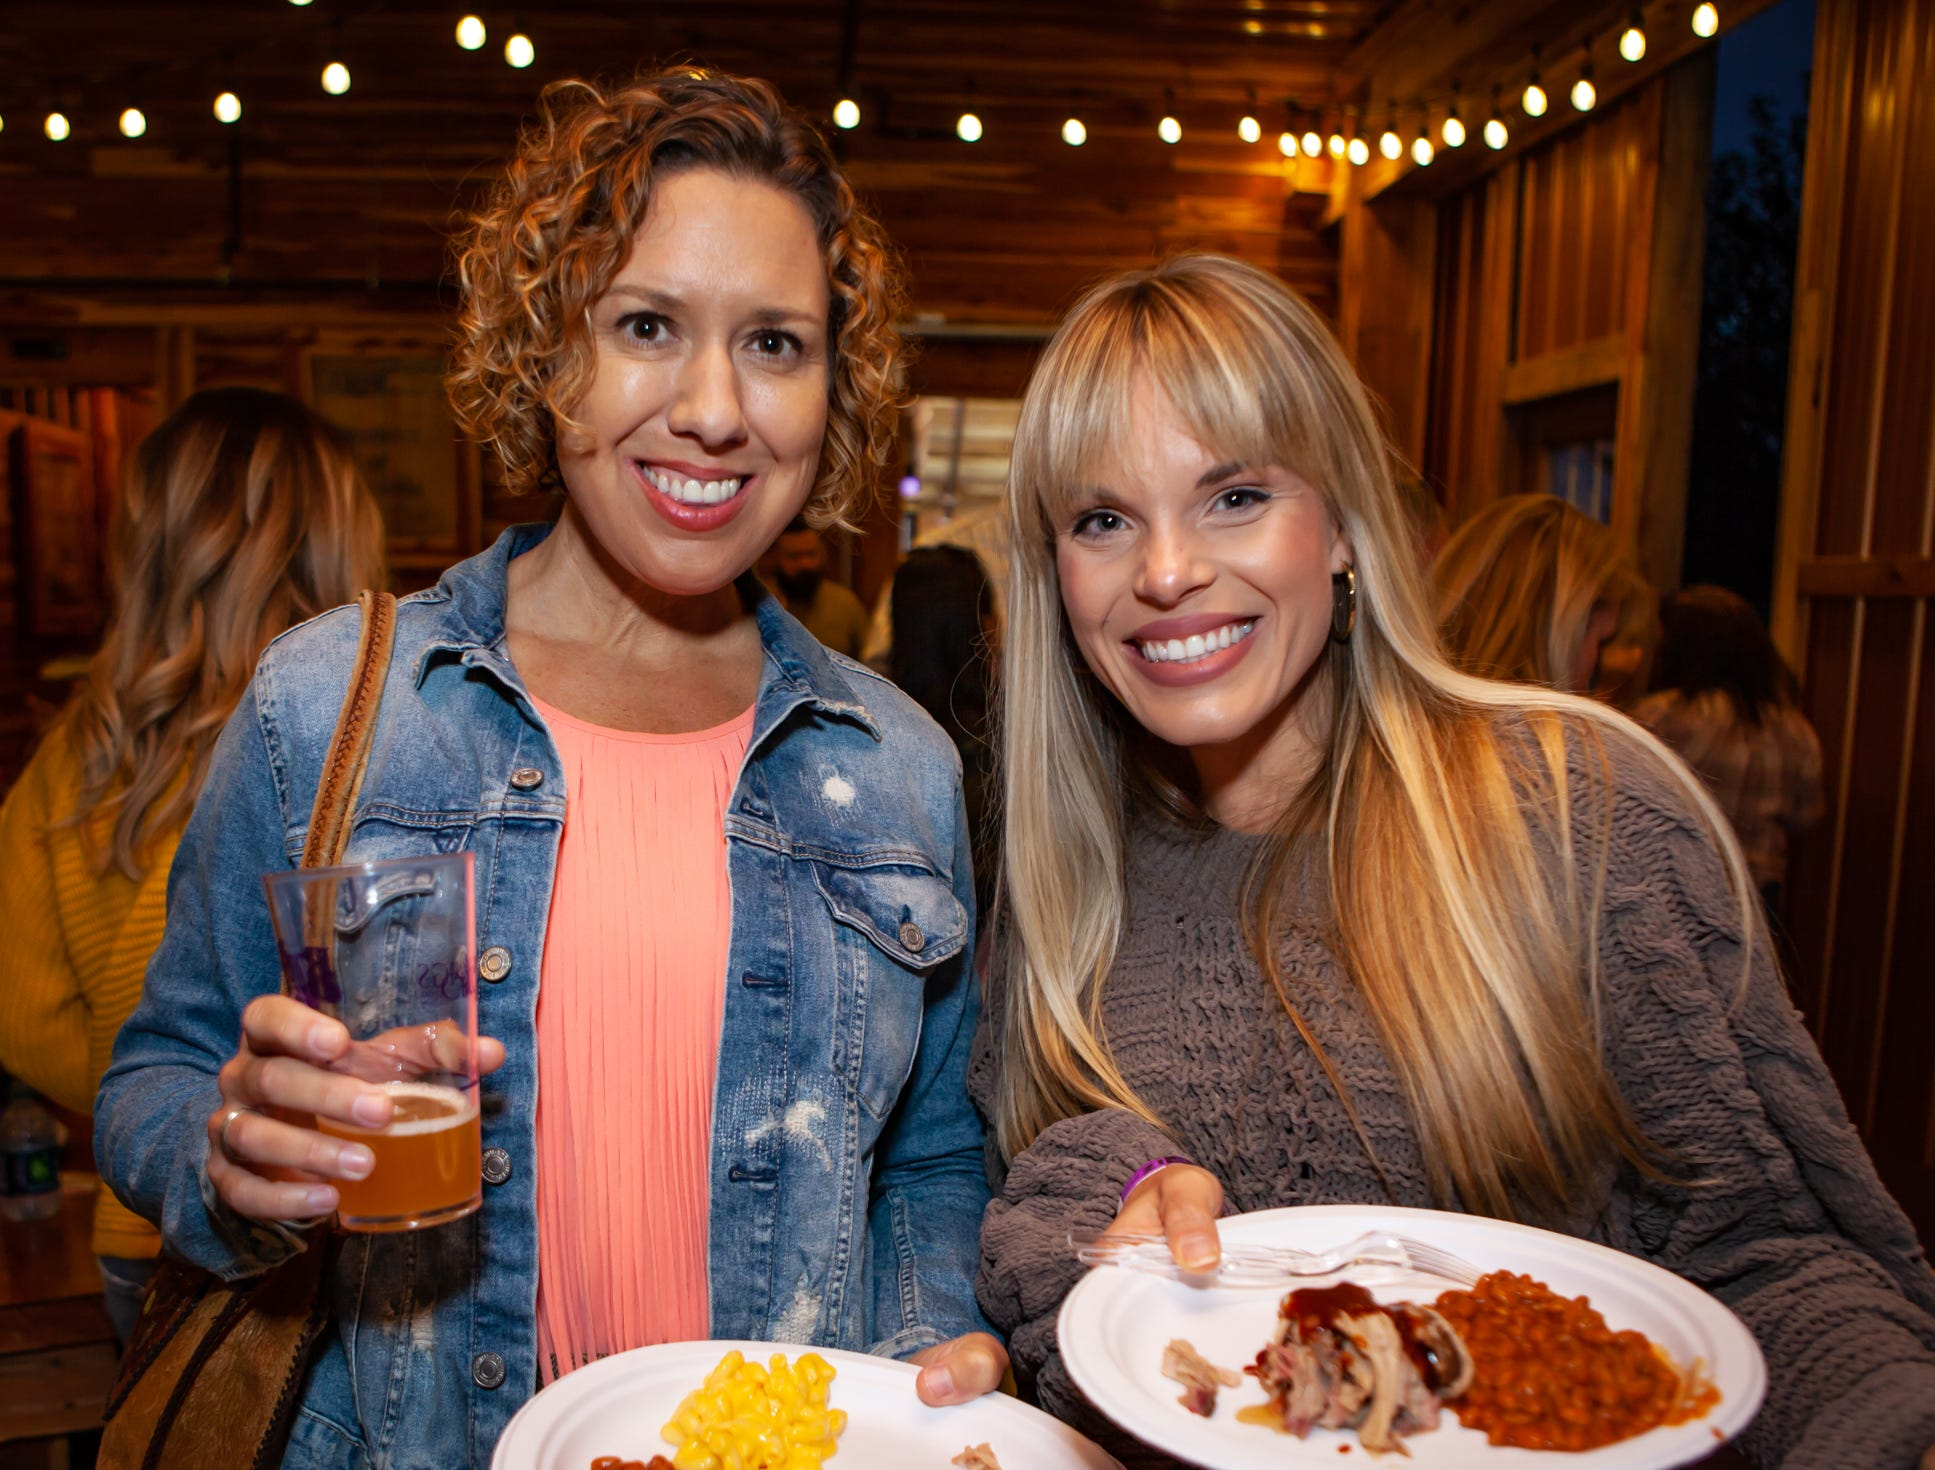 Boots and Brews: Shawna Conner and Kira Whitaker